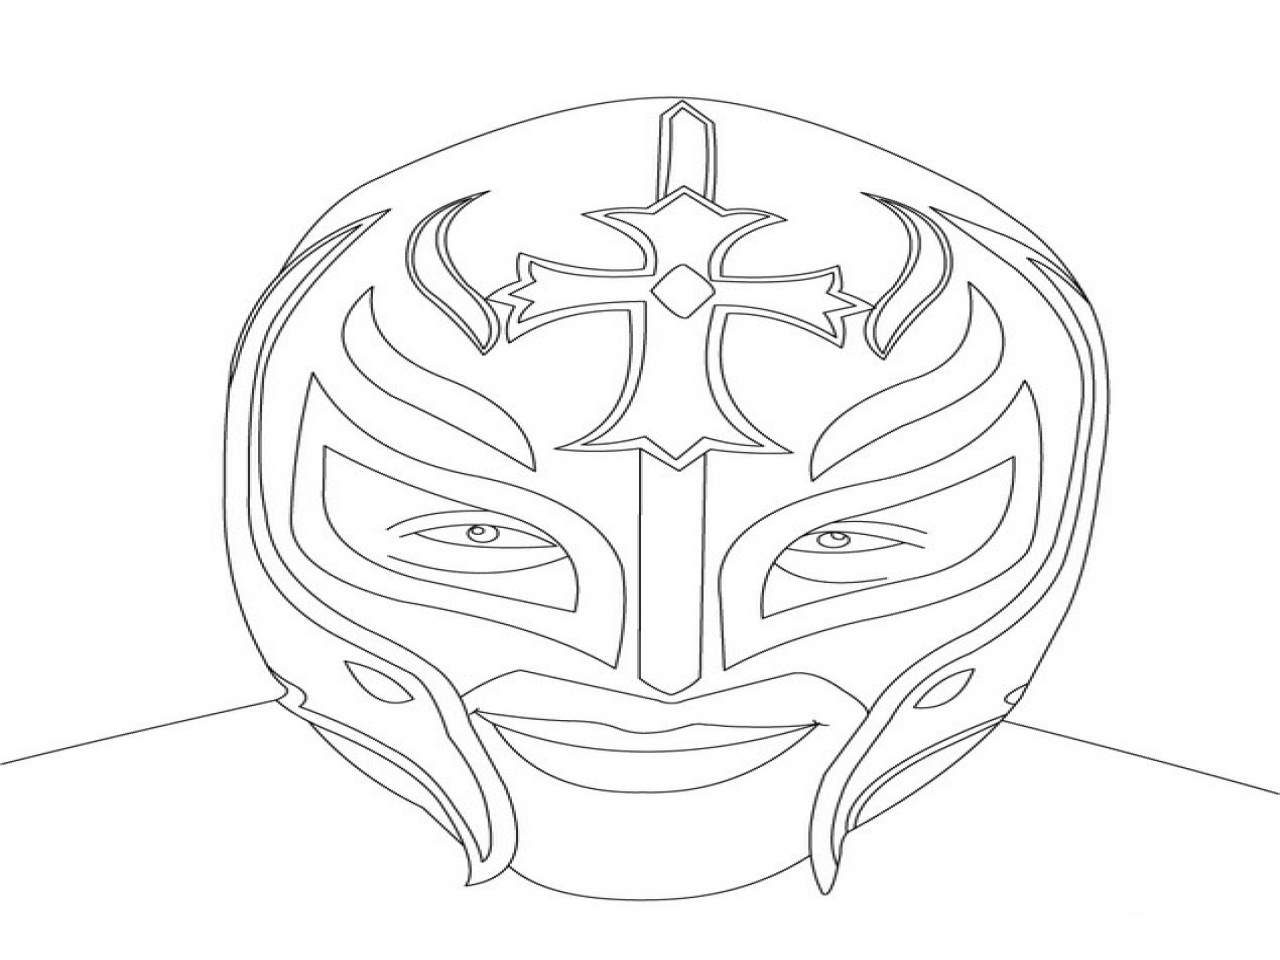 wwe rey mysterio coloring pages wwe wrestling contender rey mysterio coloring page color pages rey coloring wwe mysterio